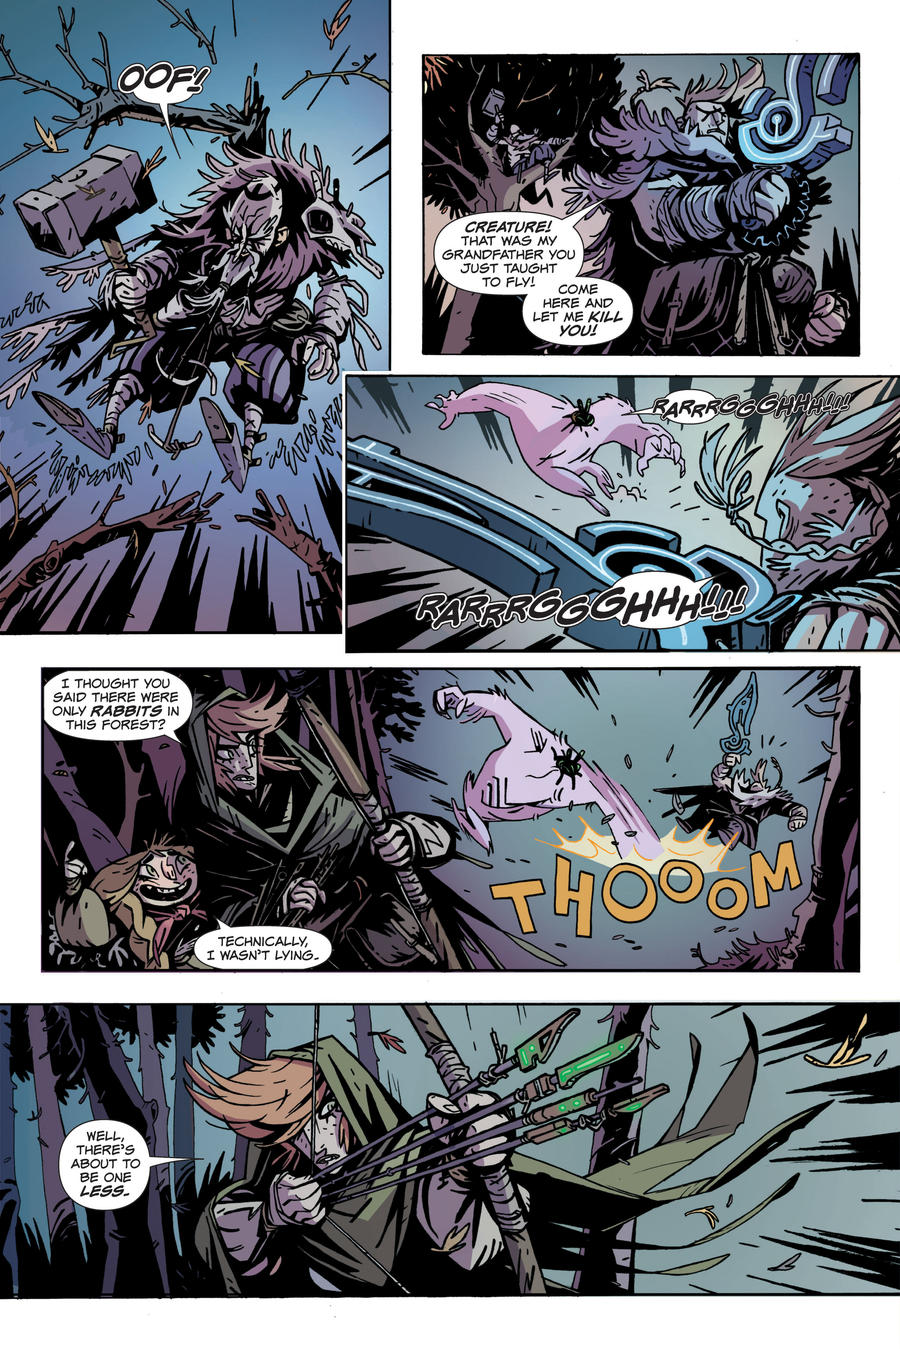 The Spider King page